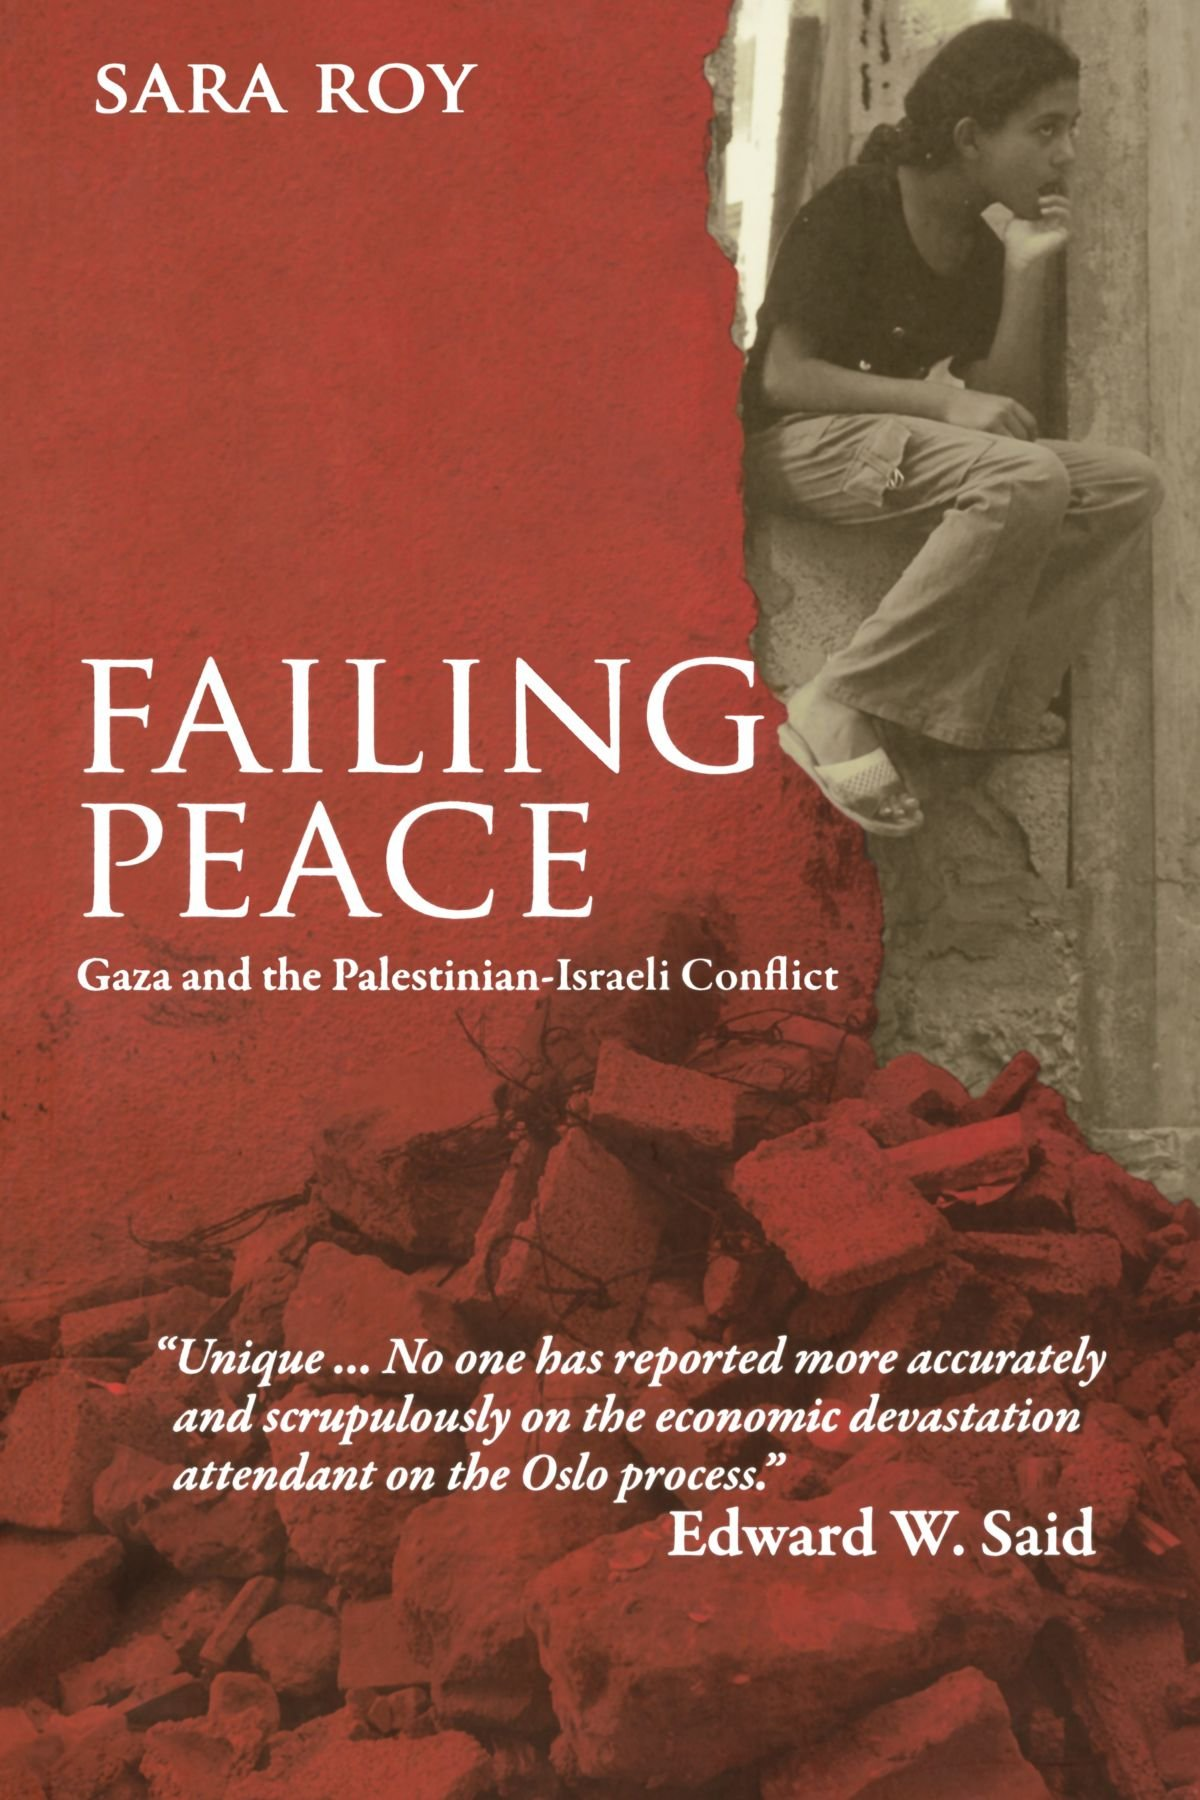 failing peace gaza and the palestinian i conflict amazon failing peace gaza and the palestinian i conflict amazon co uk sara roy 9780745322346 books